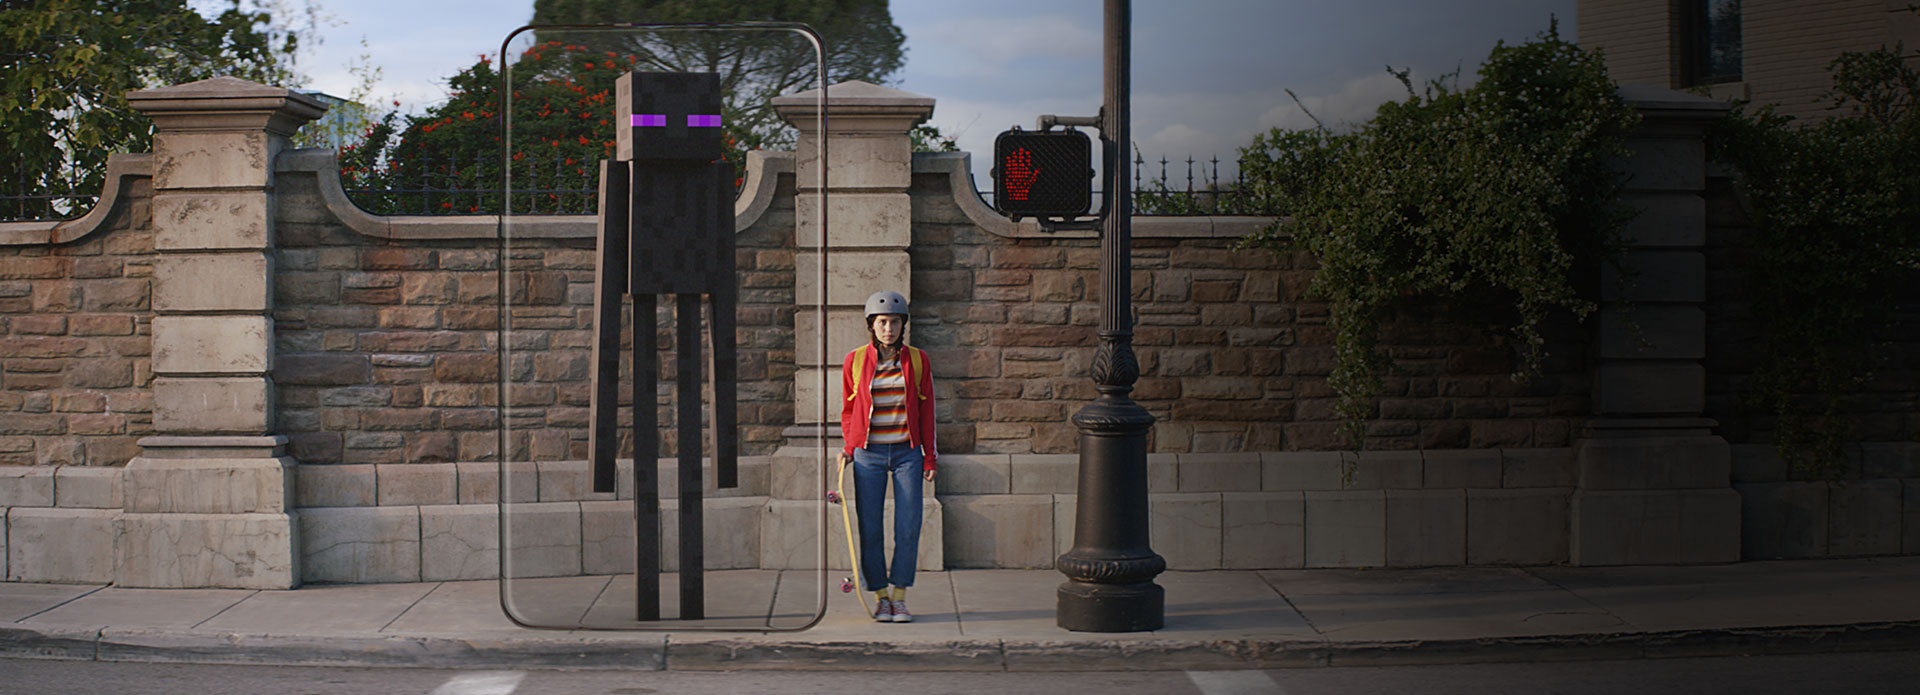 Skateboarder standing at a pedestrian crossing next to Minecraft character